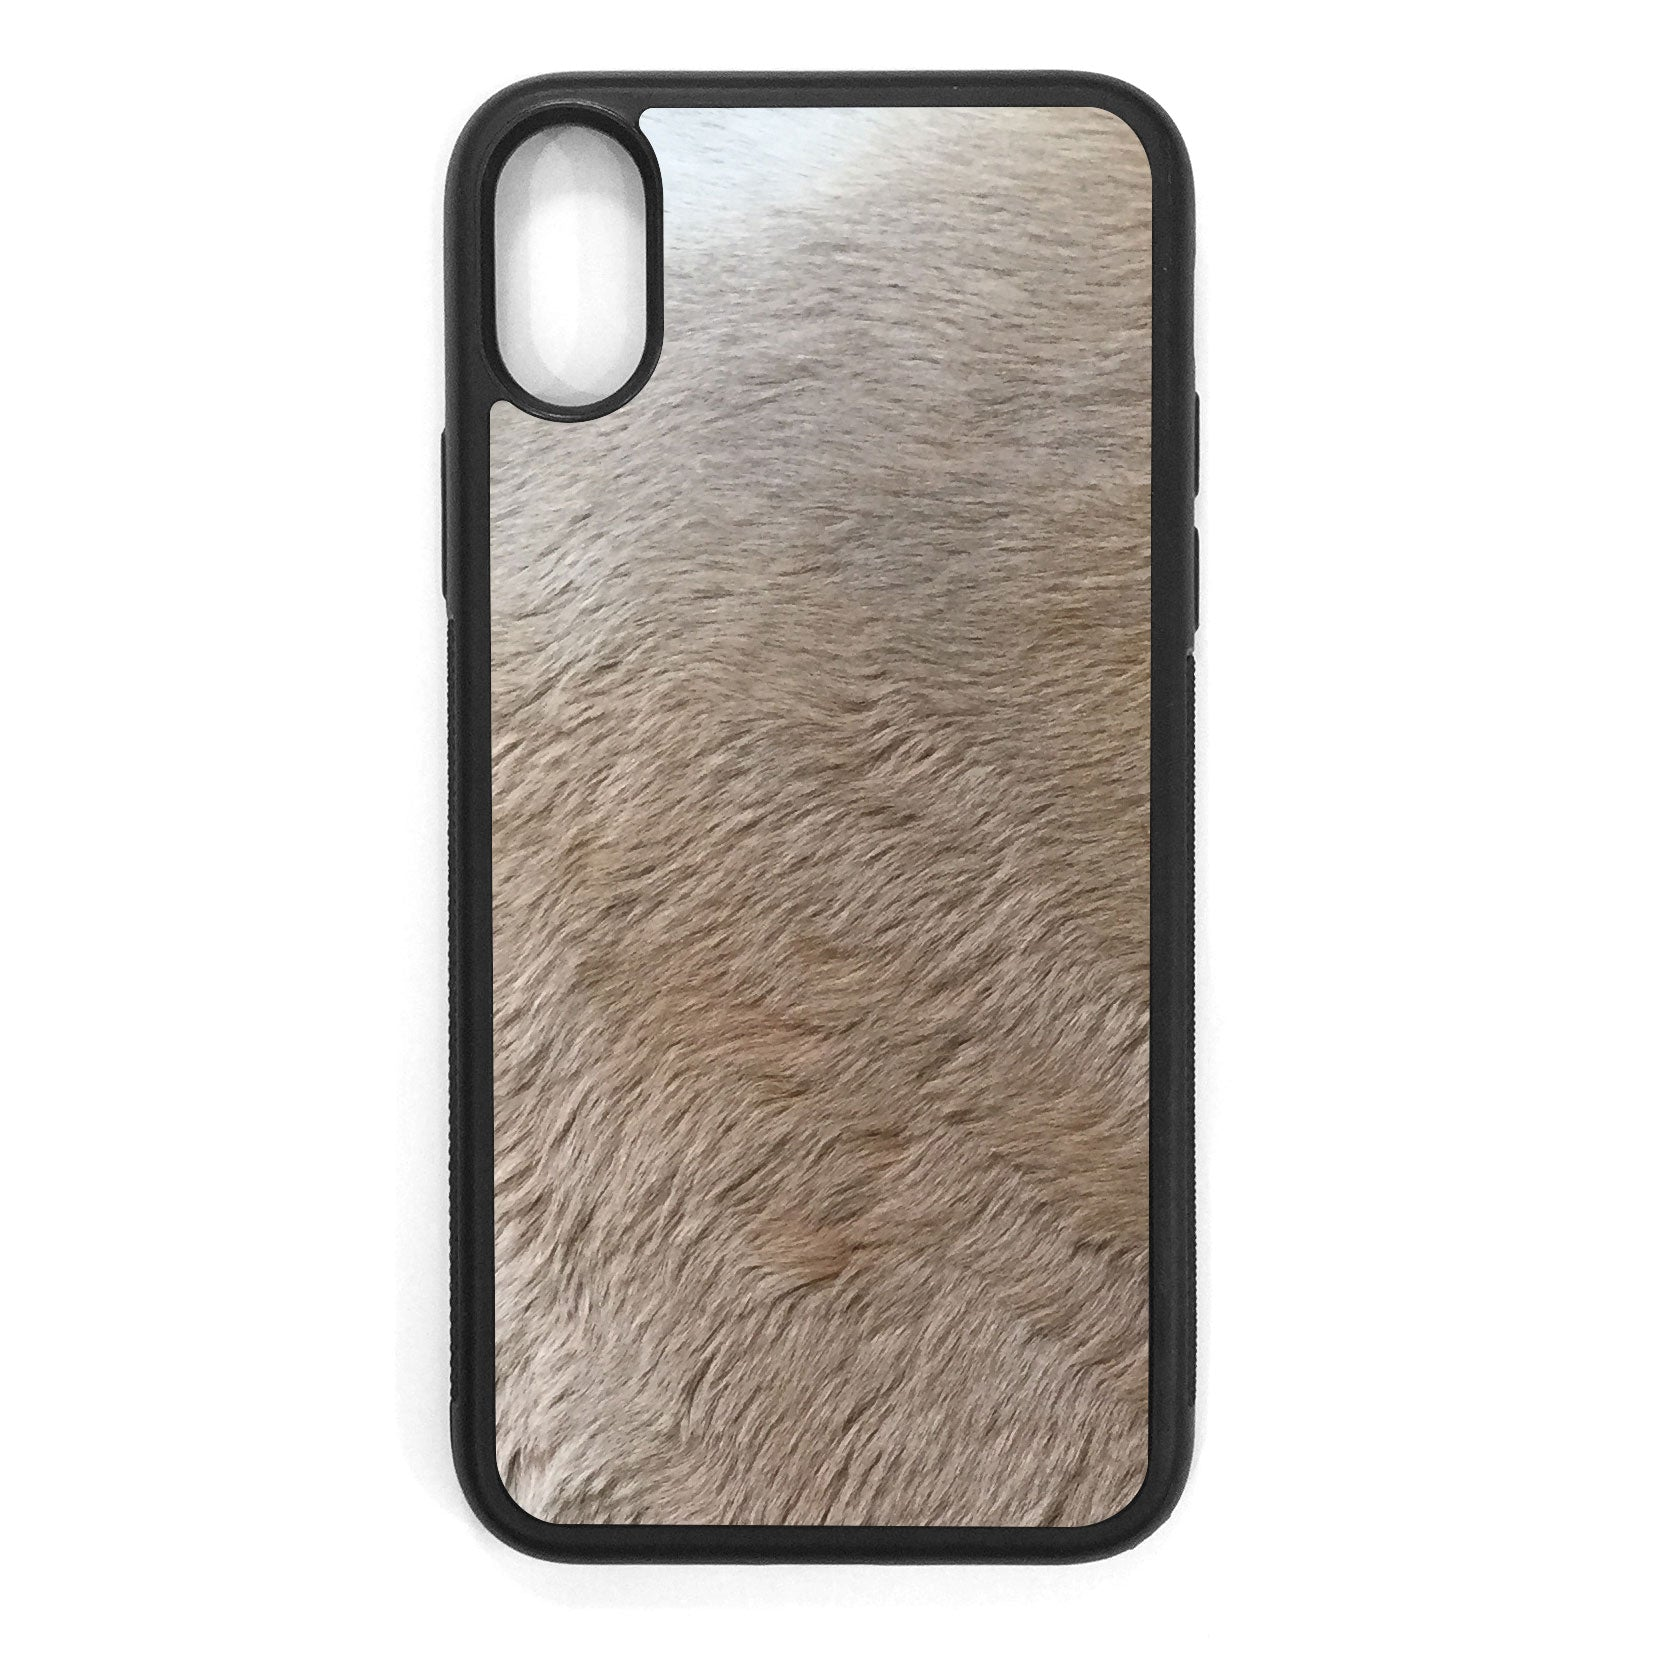 Kangaroo Fur iPhone X Leather Case